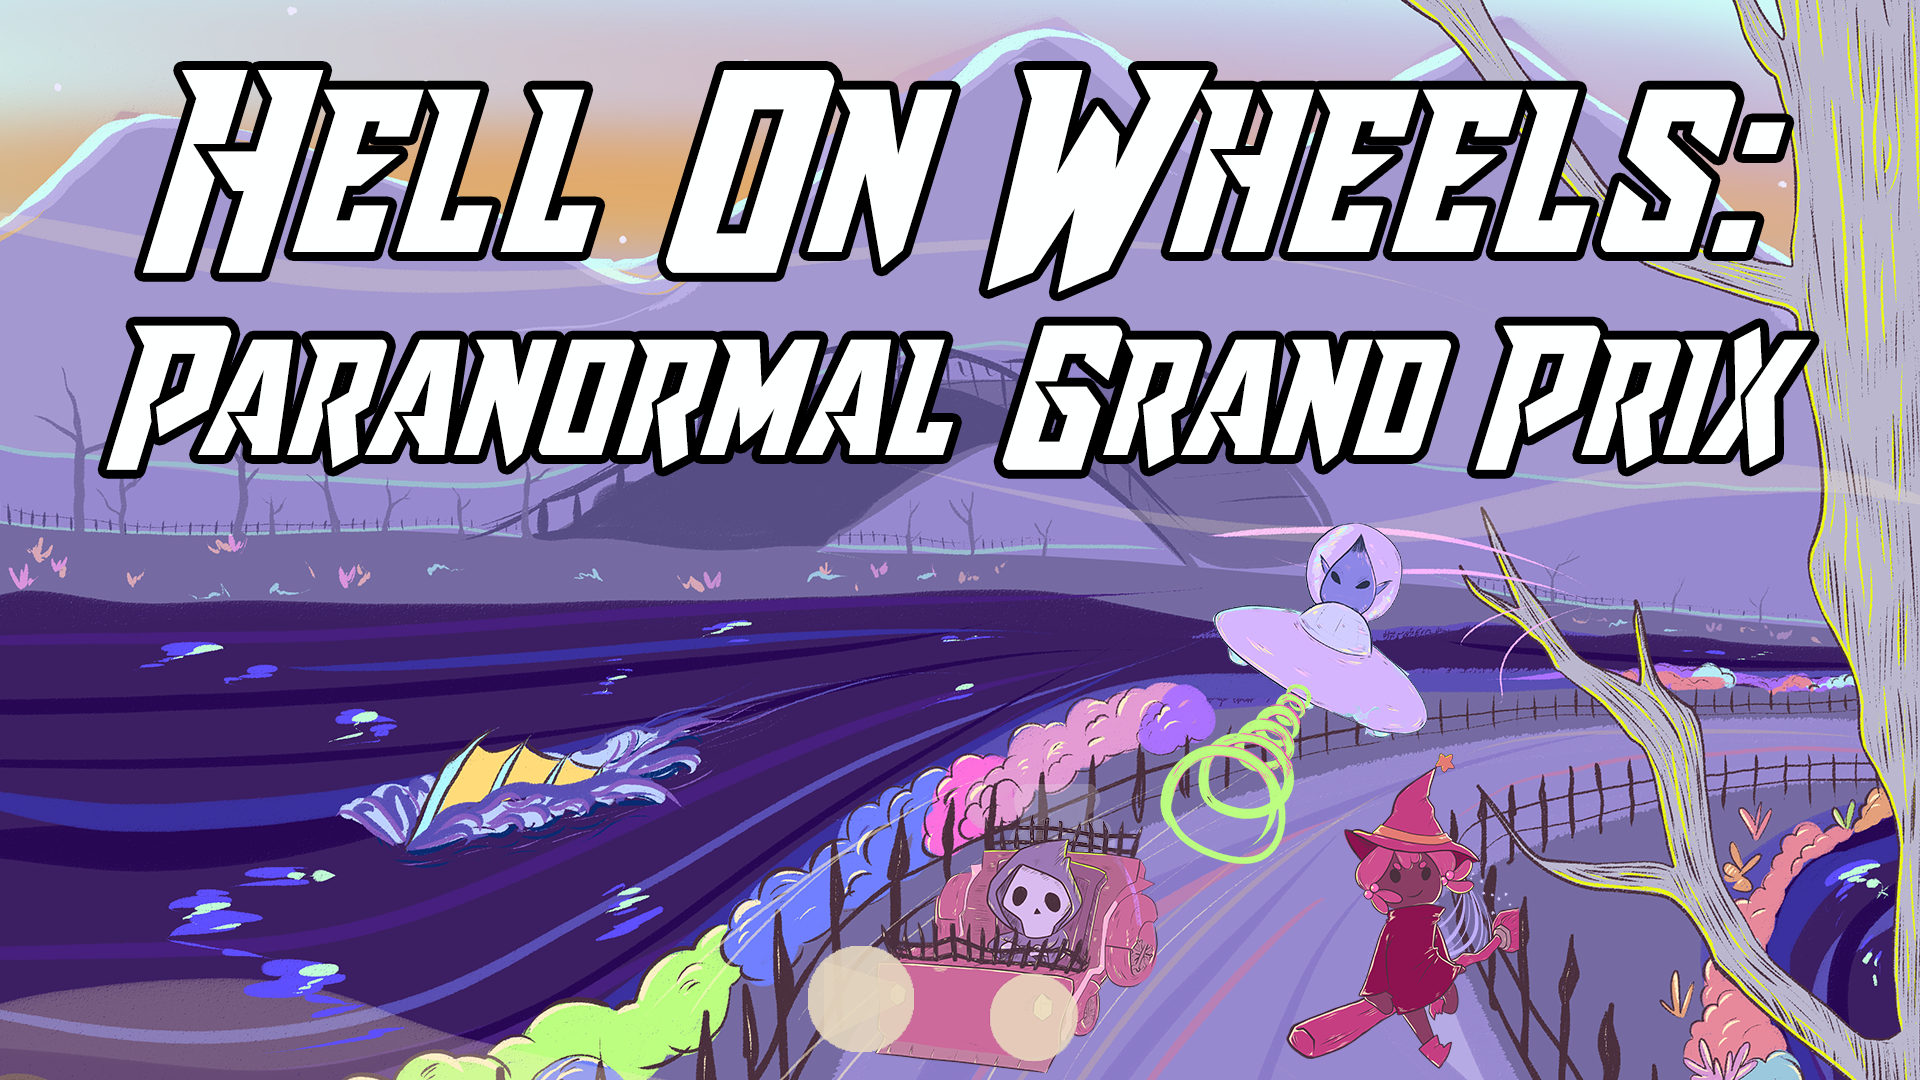 Hell on Wheels: Paranormal Grand Prix